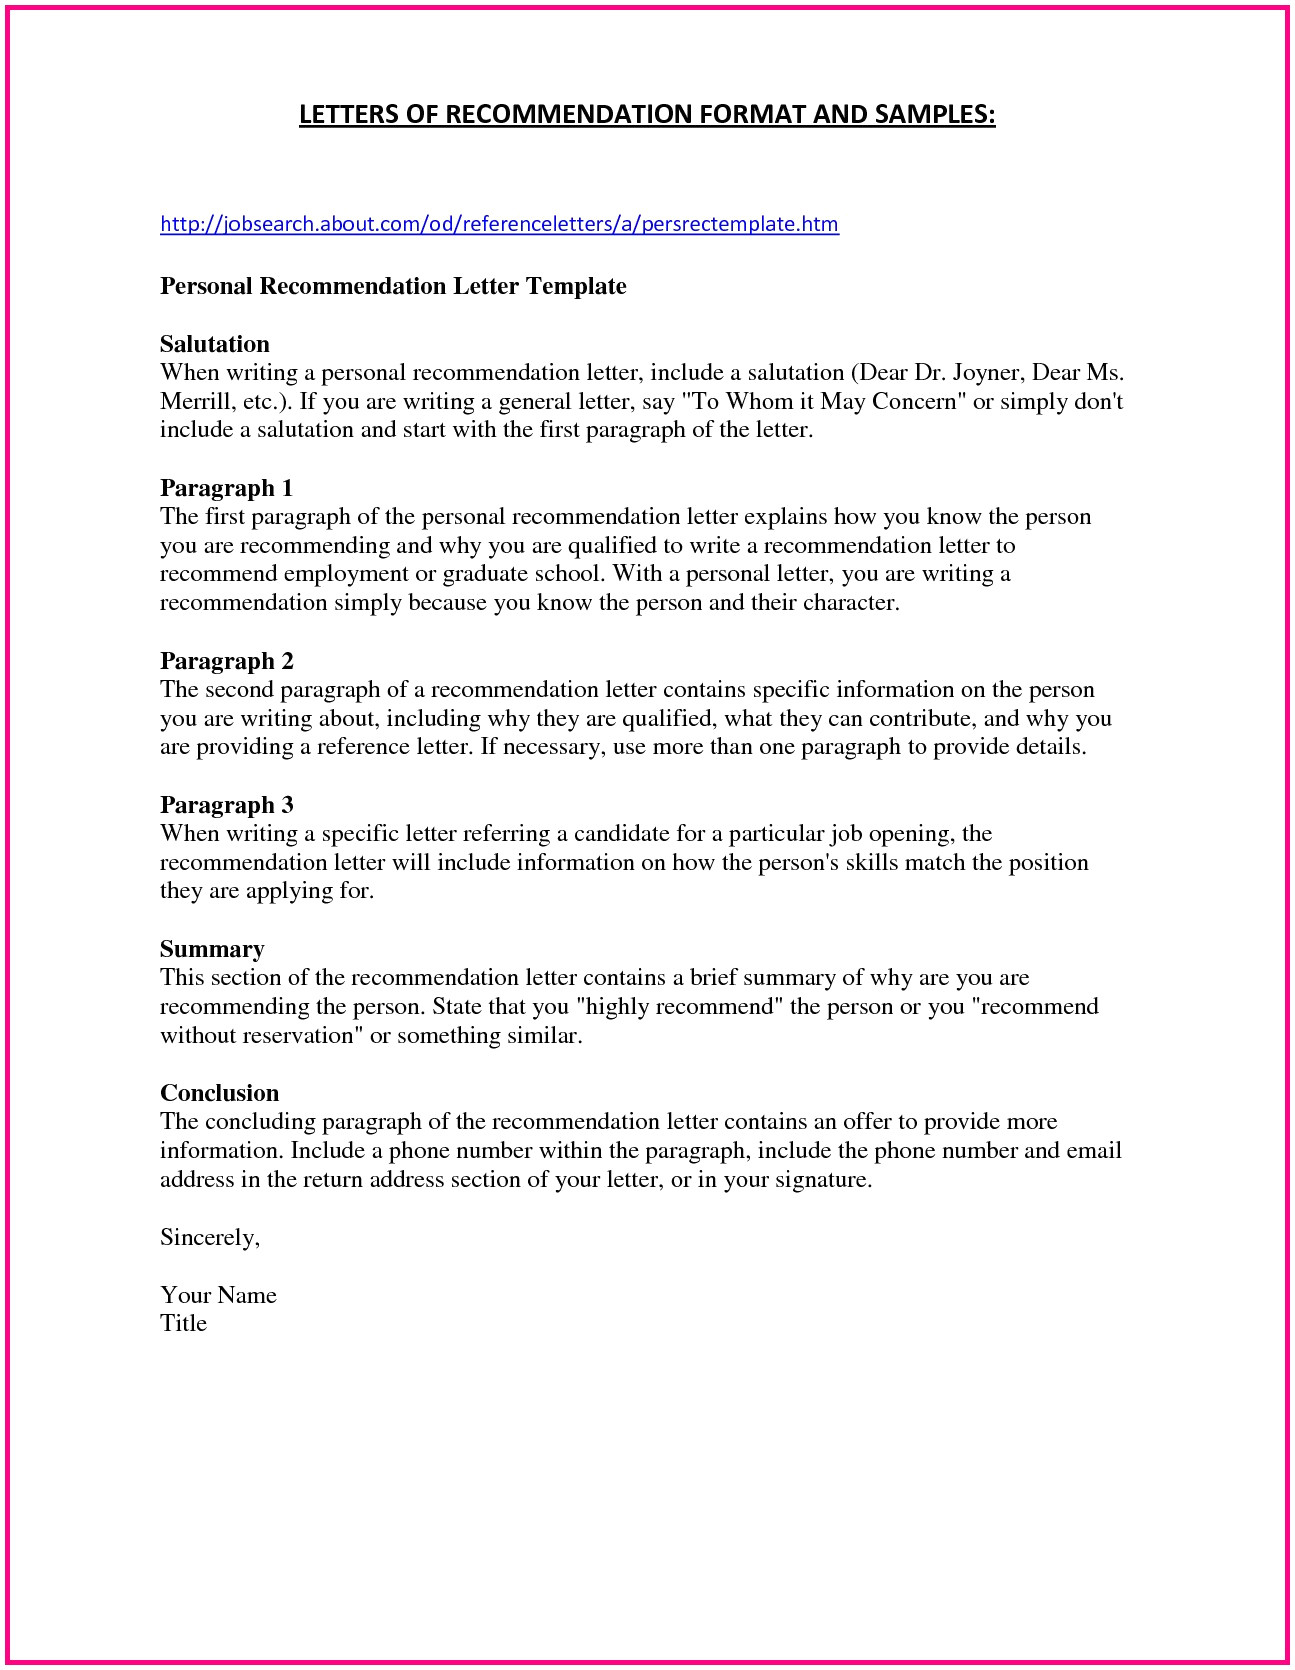 Mis sold Pension Letter Template Pension Letter Template Collection